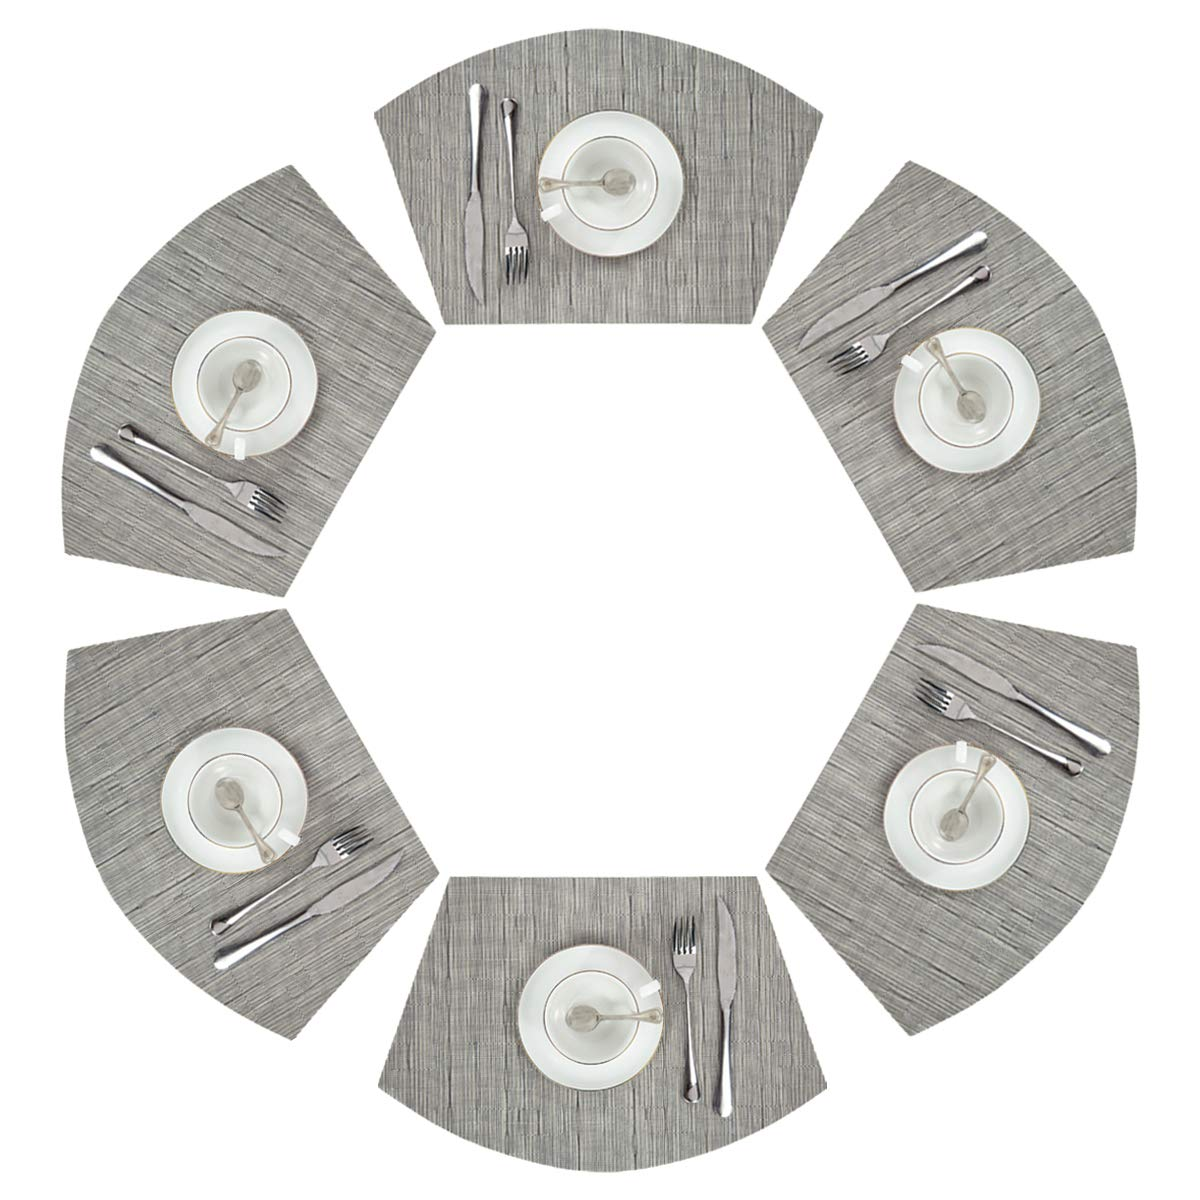 PAUWER Wedge Placemats Set of 6 Blue Woven Vinyl Round Table Placemats Heat Insulation Washable Round Table Placemats Wipe Clean